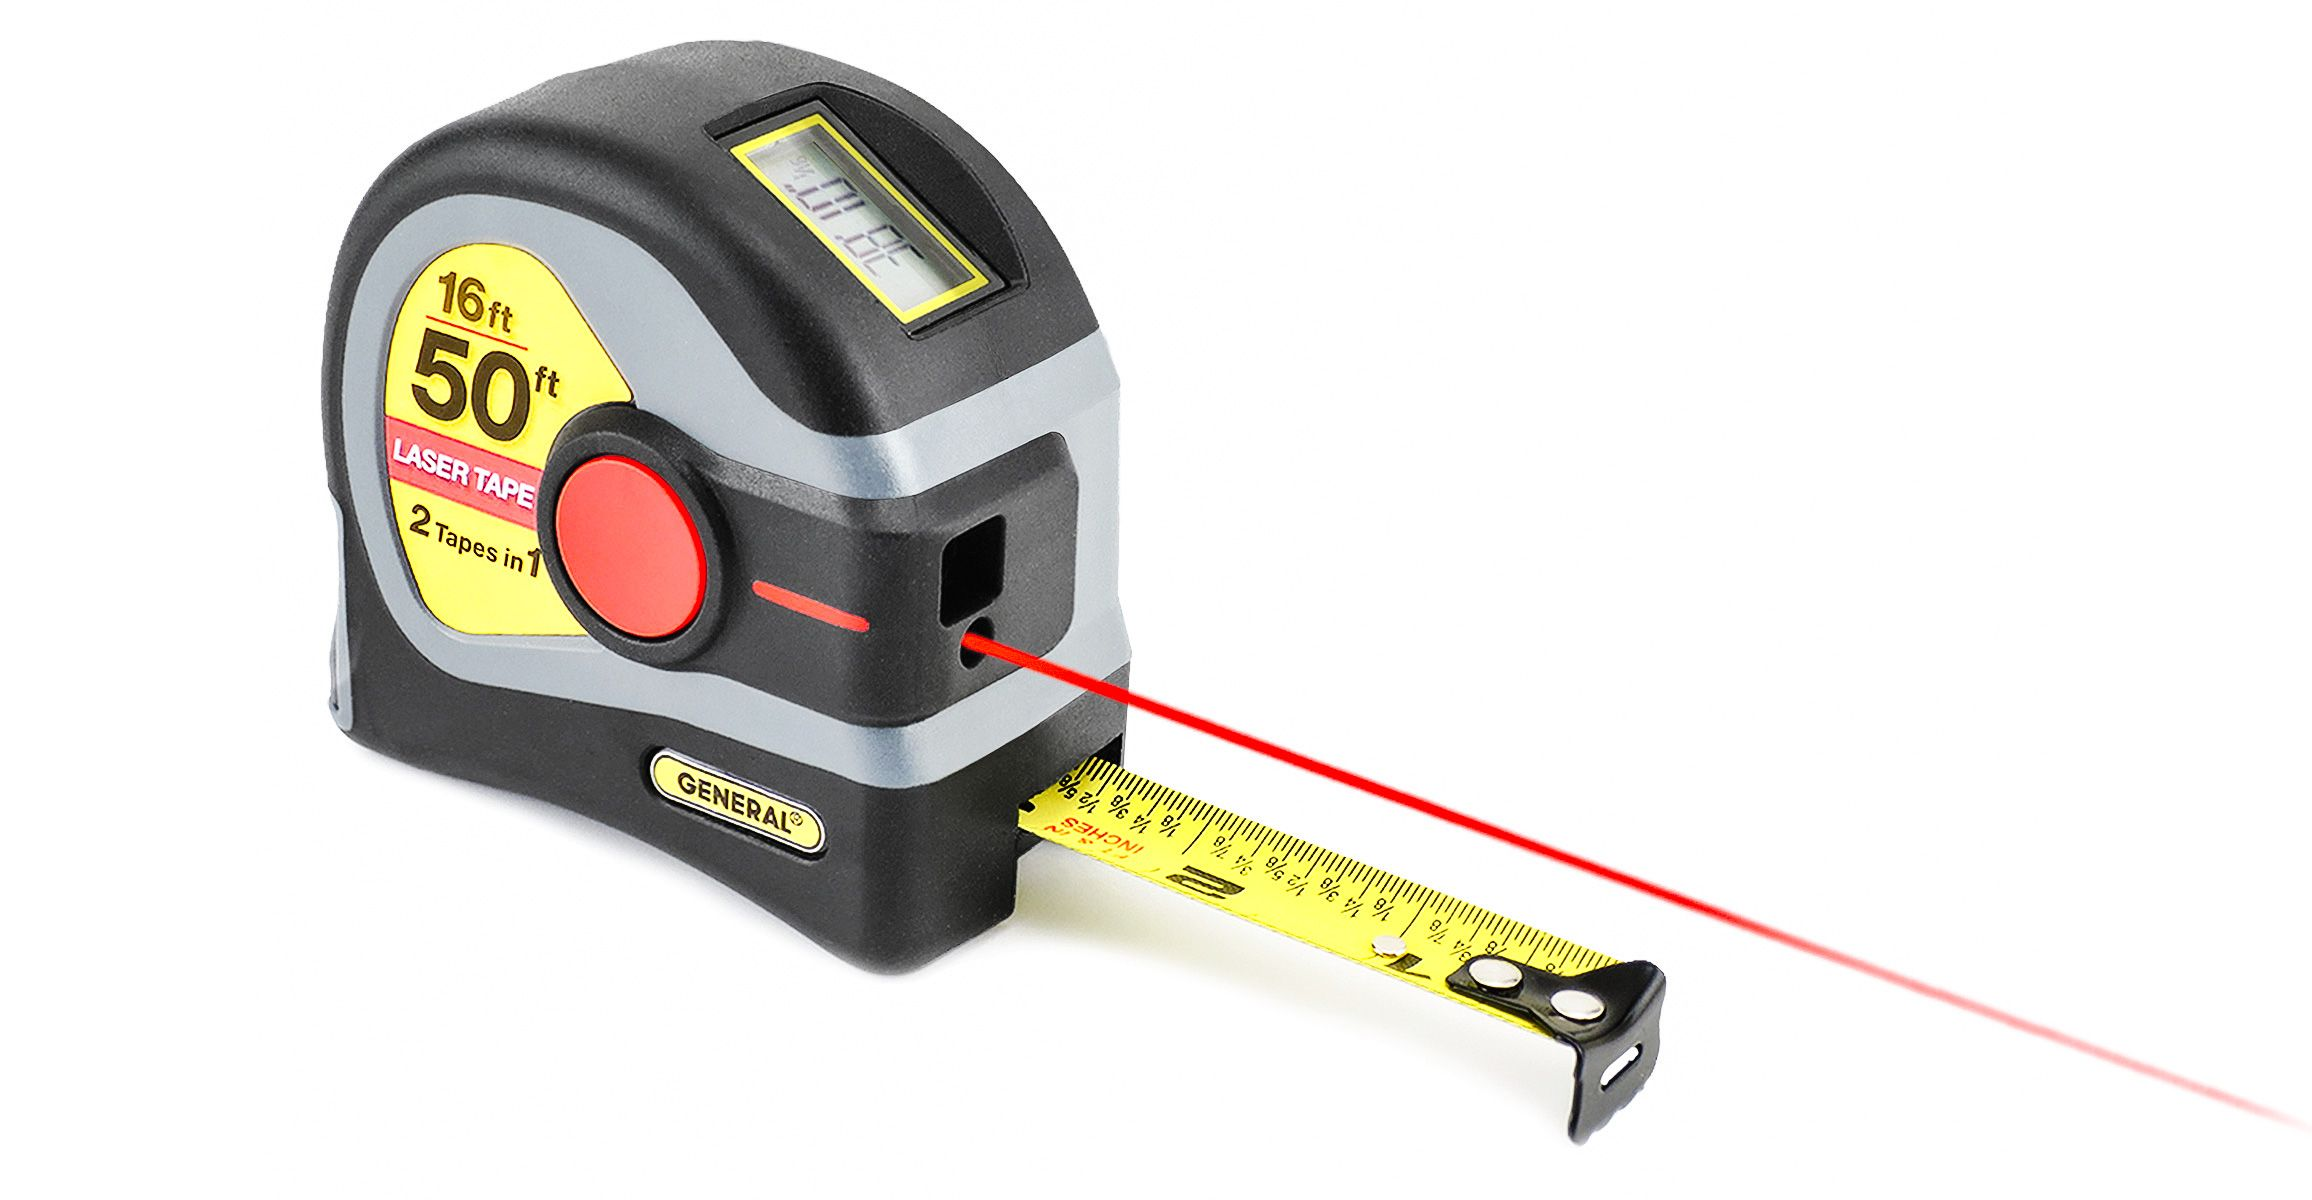 37 Laser Tape Measure General Tools Future Technology Gadgets Tools Household Hacks